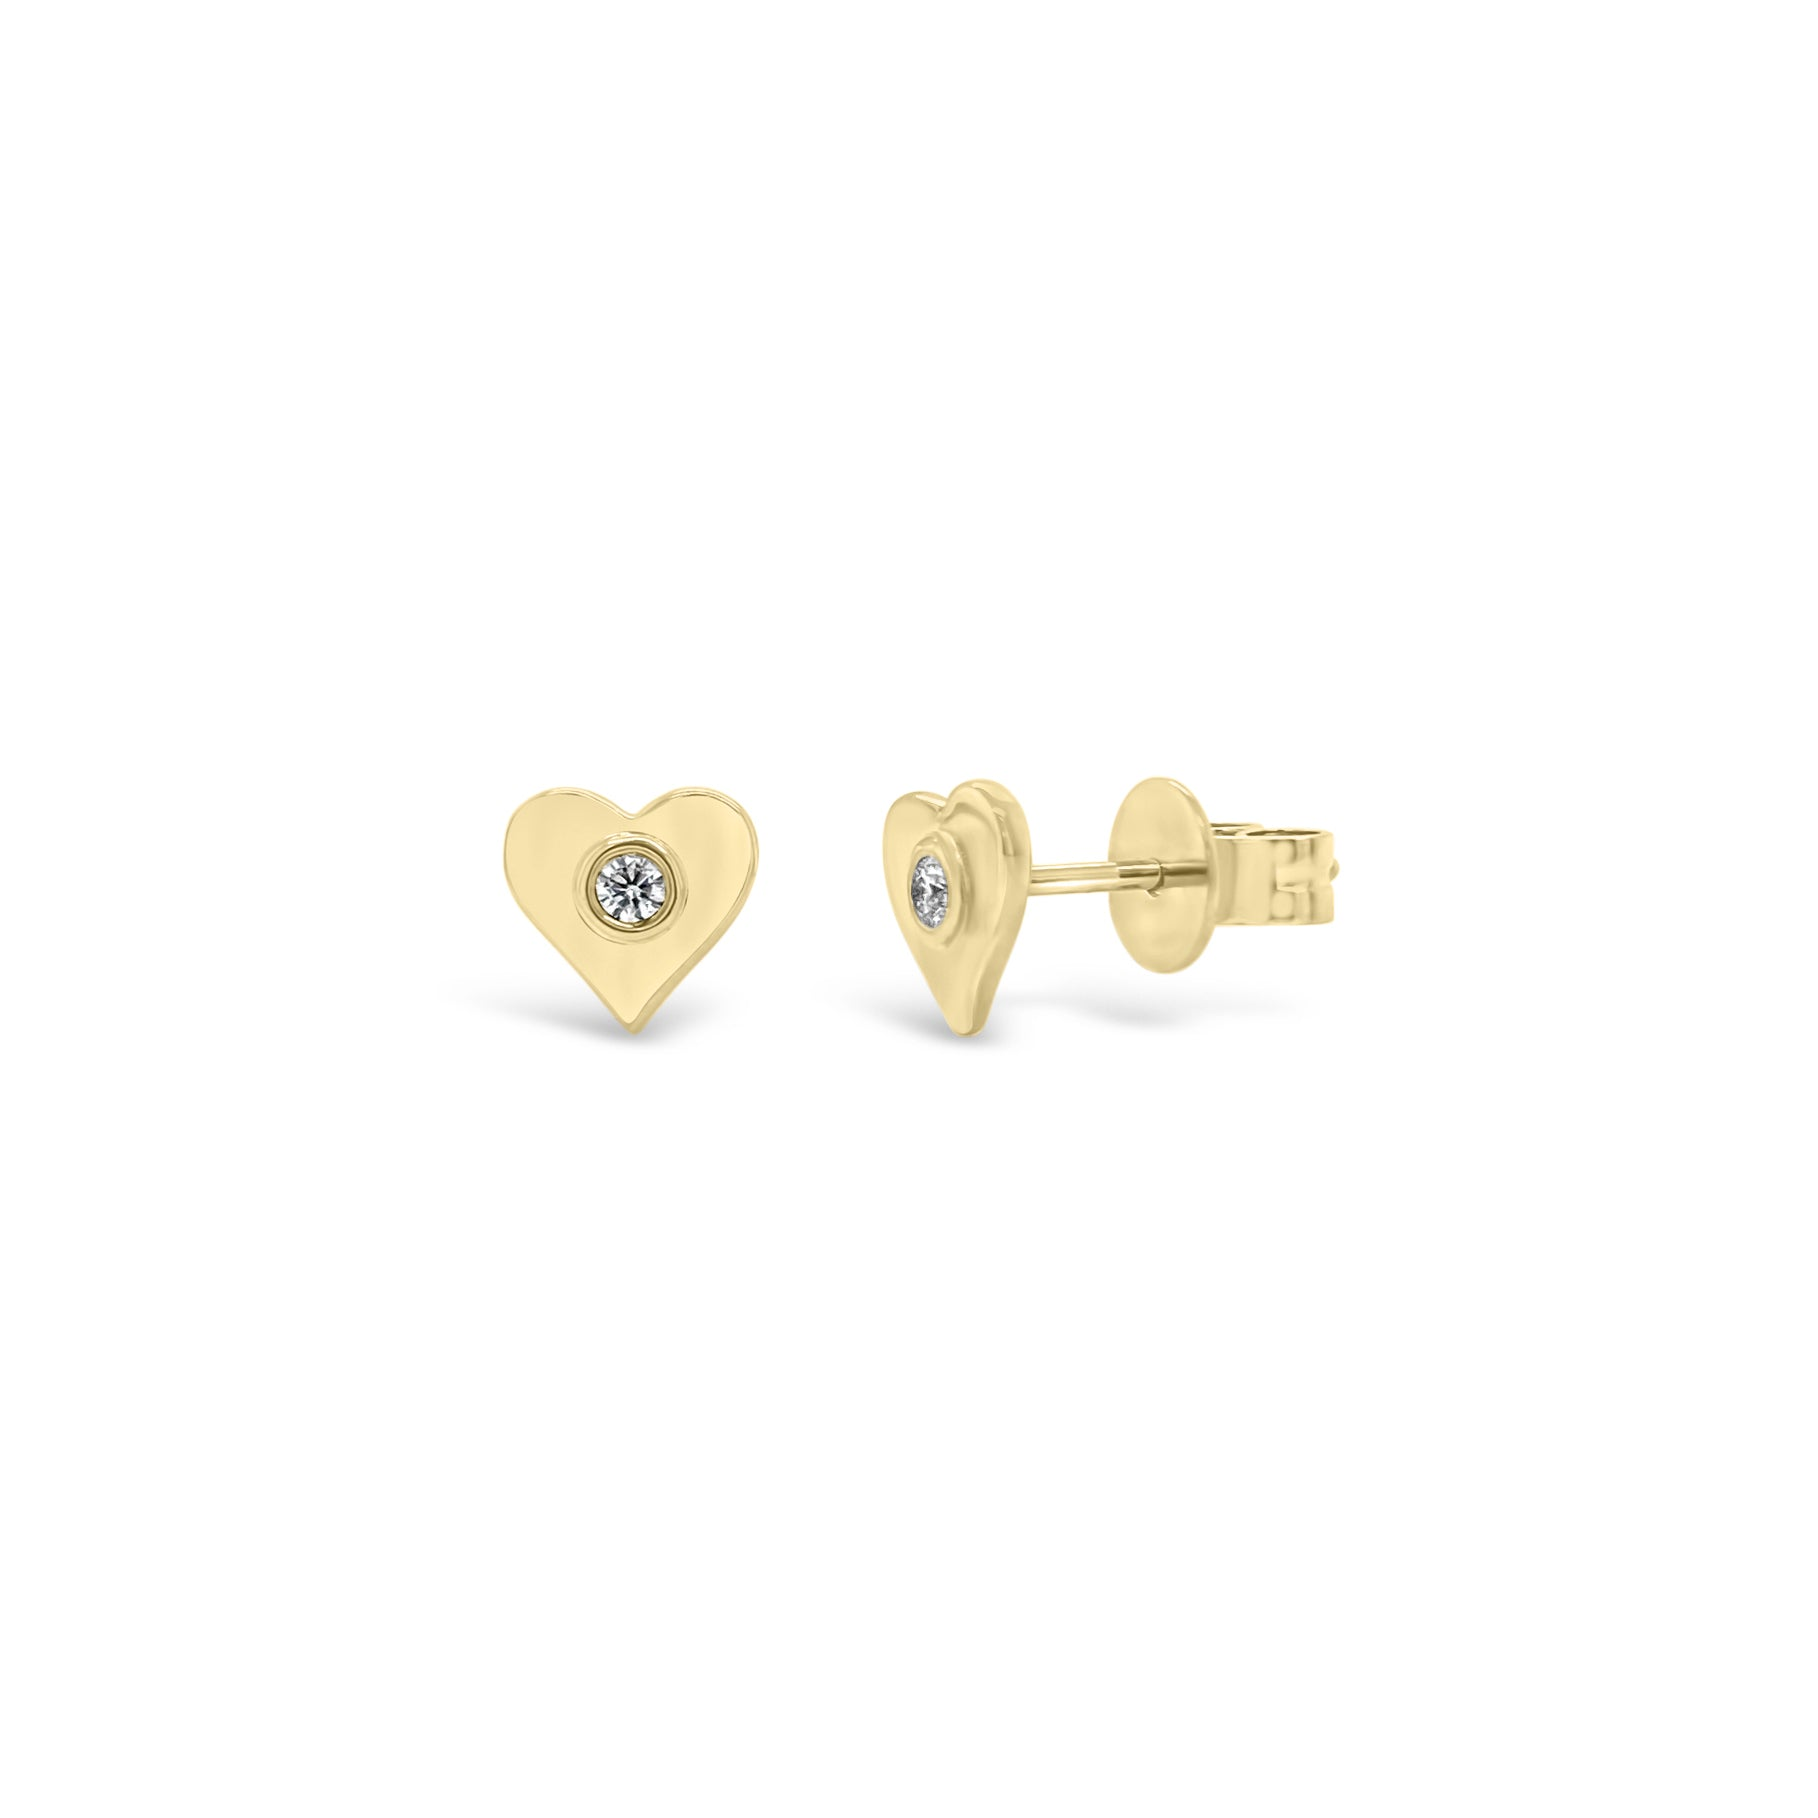 Gold Heart Stud Earrings with Diamond Centers